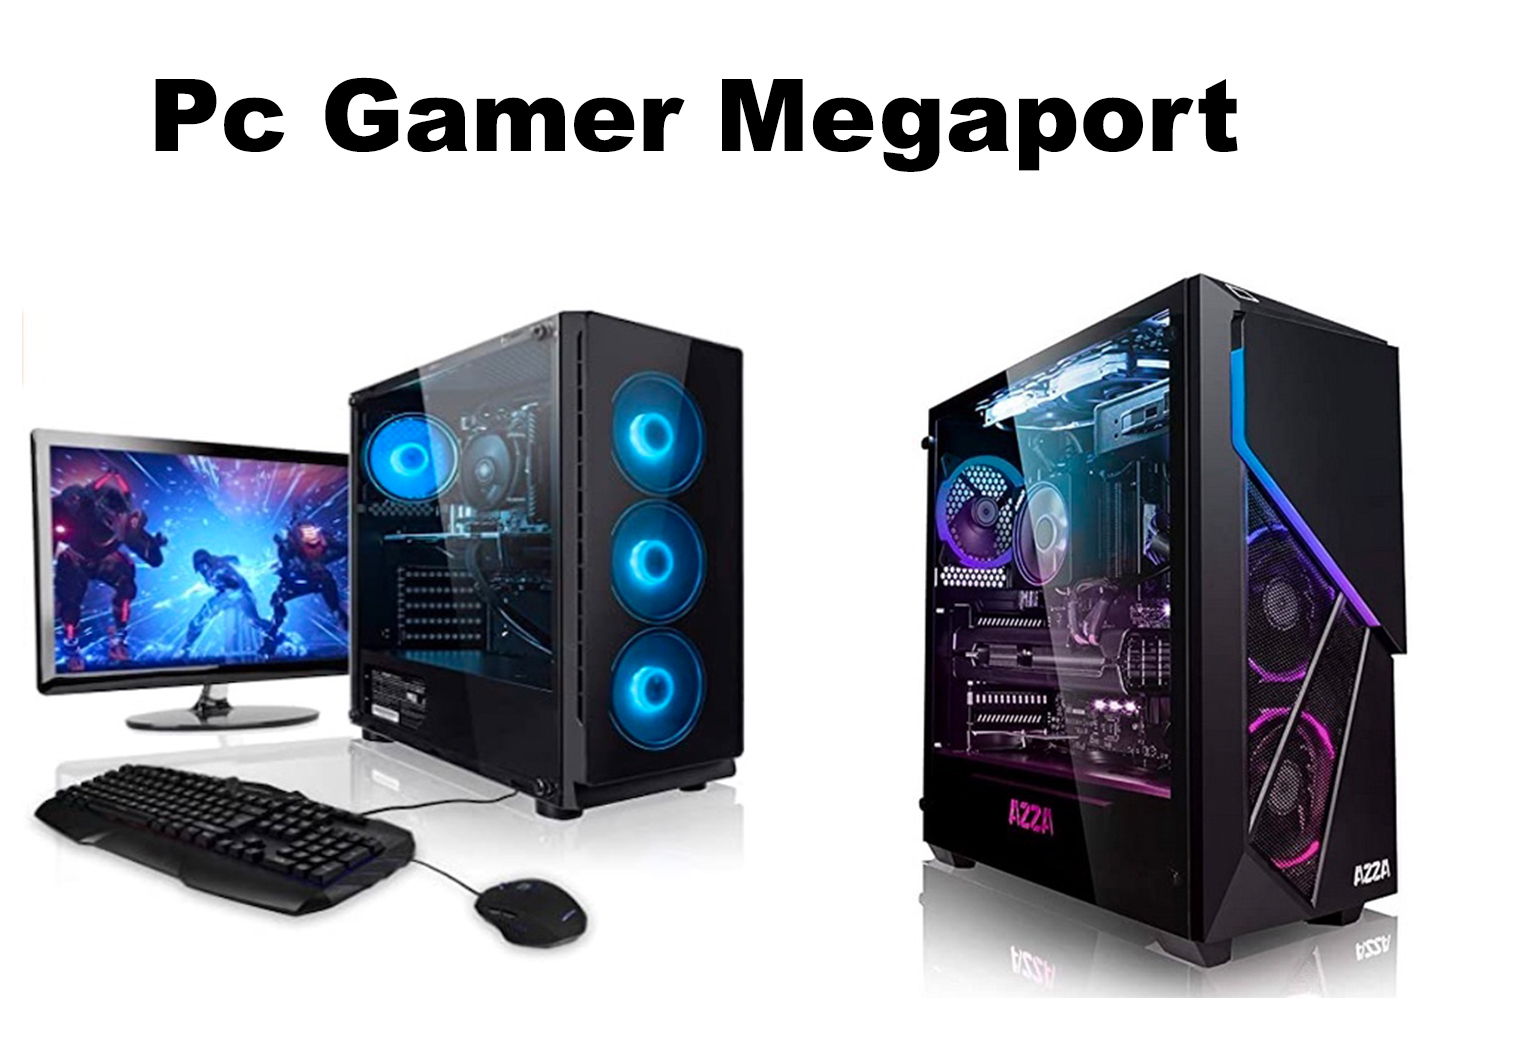 pc gamer megaport